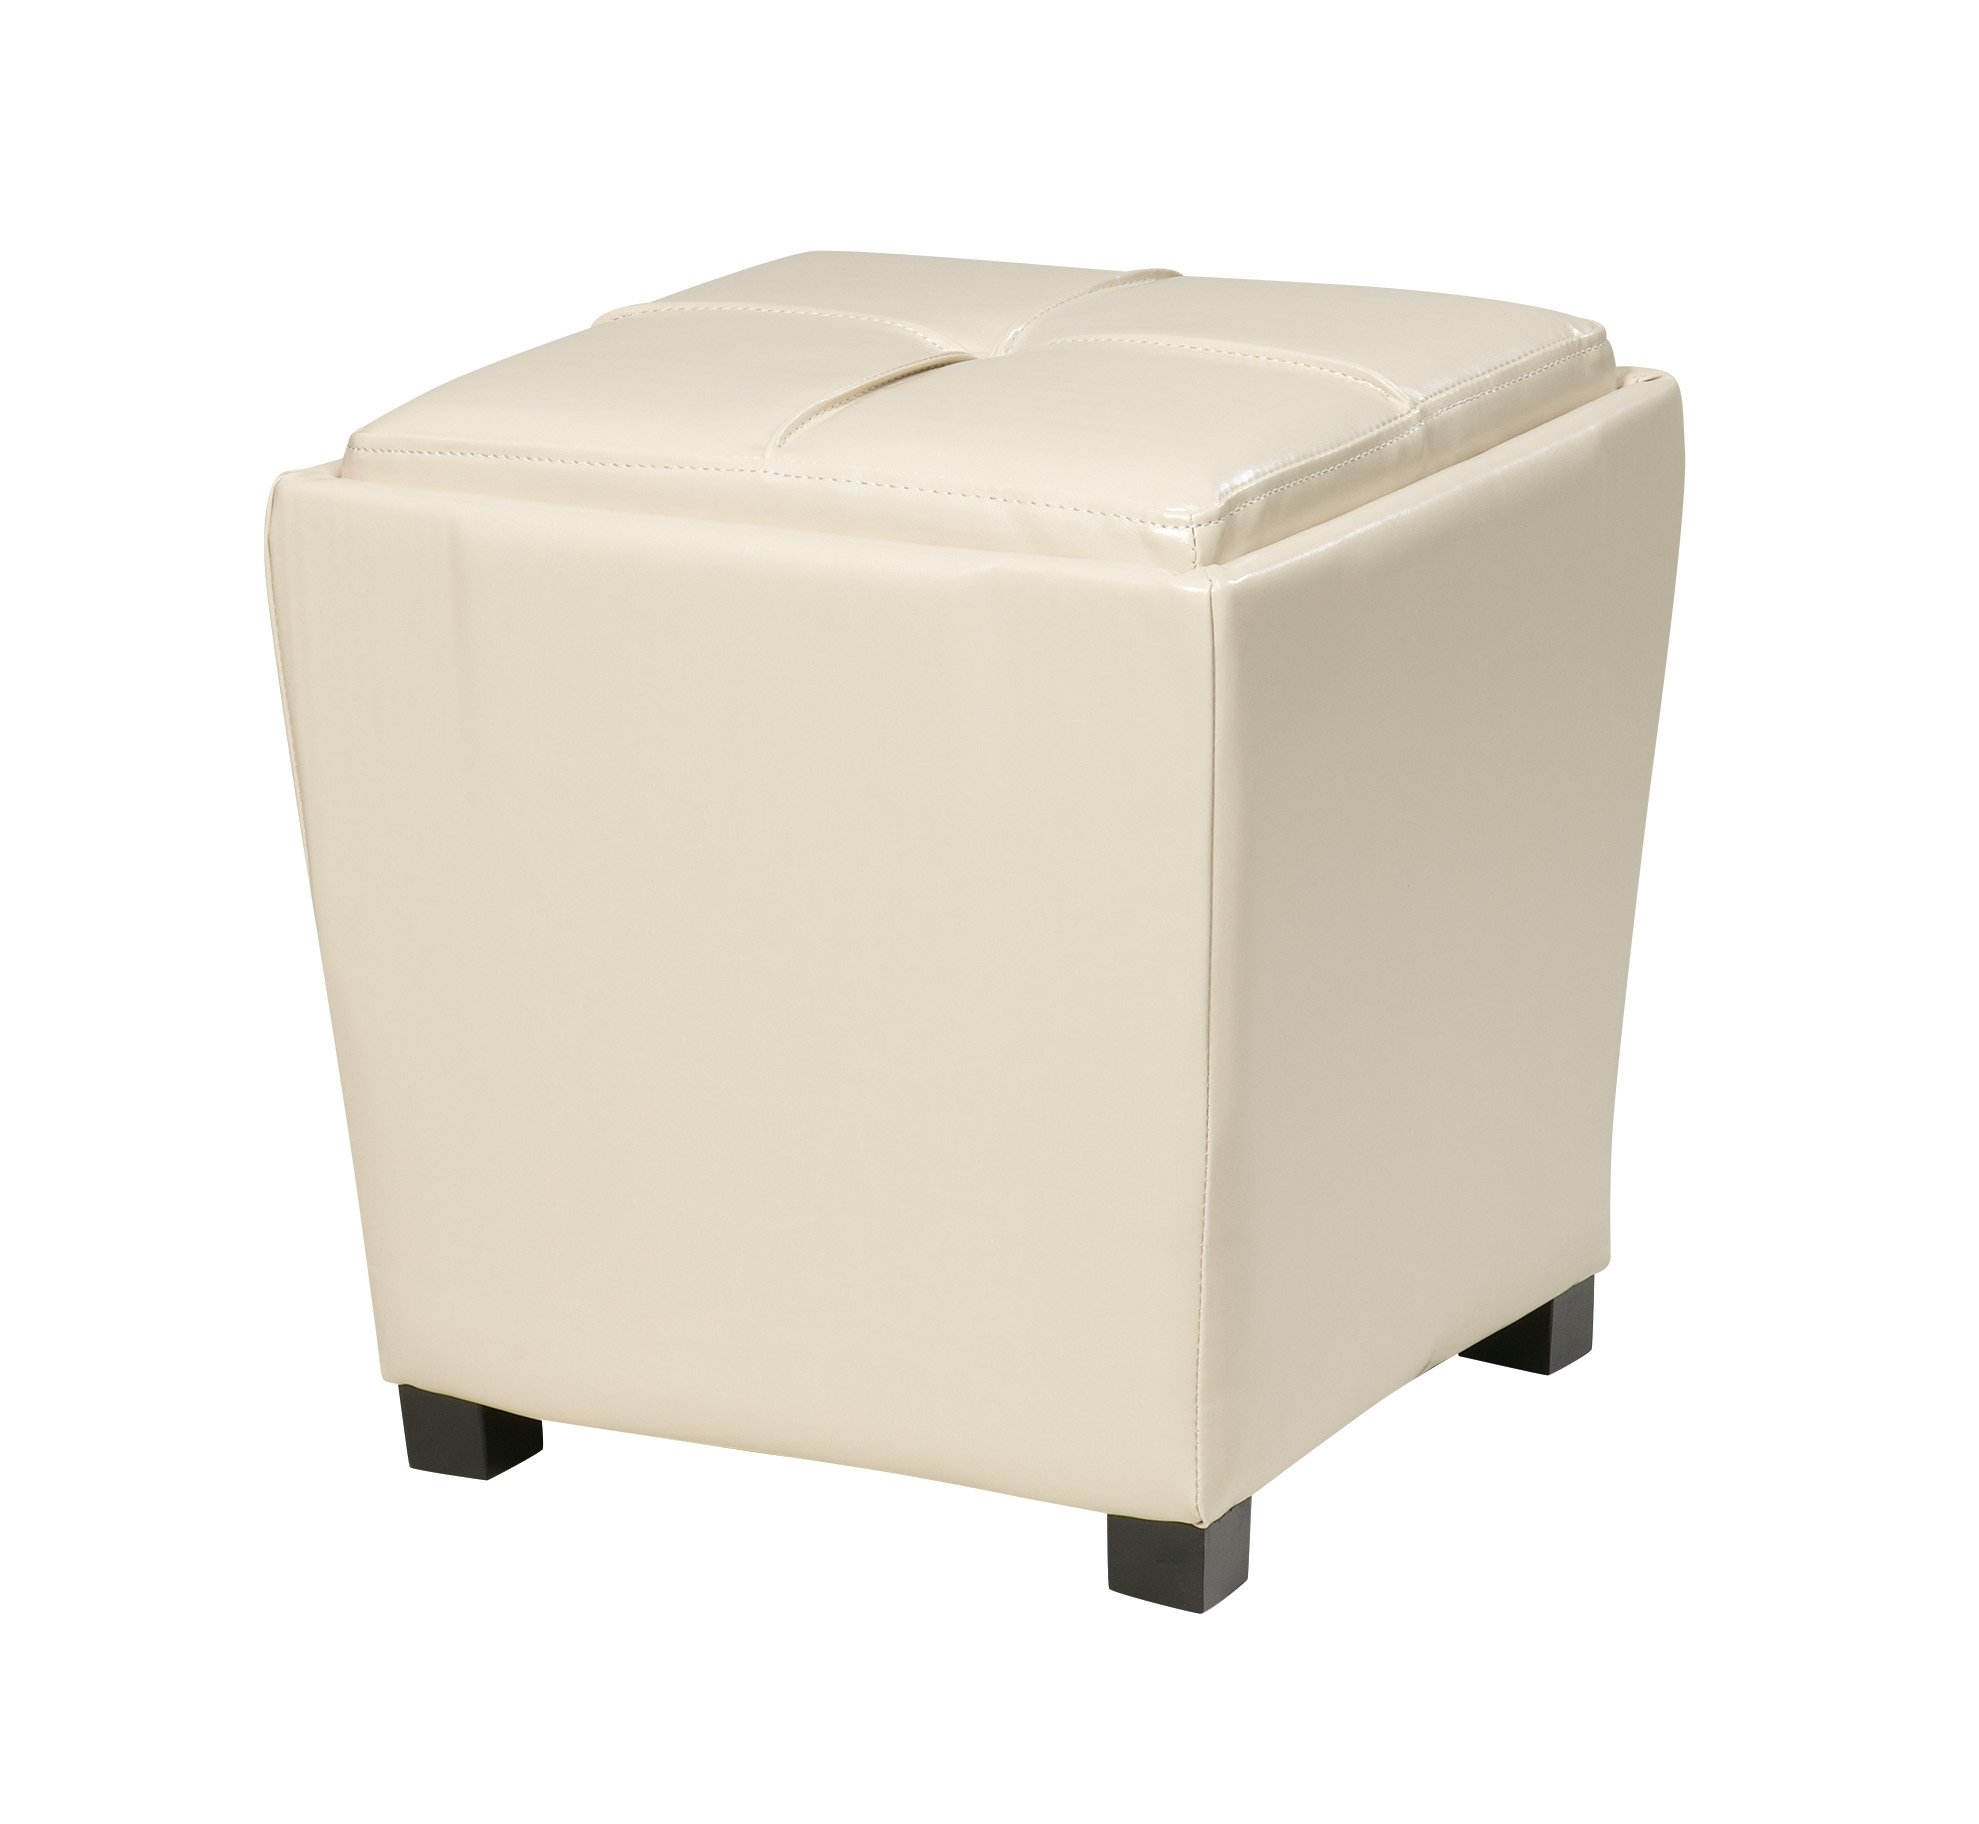 OSP Designs Office Star Metro 2-Piece Storage Ottoman Cube Set in Eco Leather, Cream